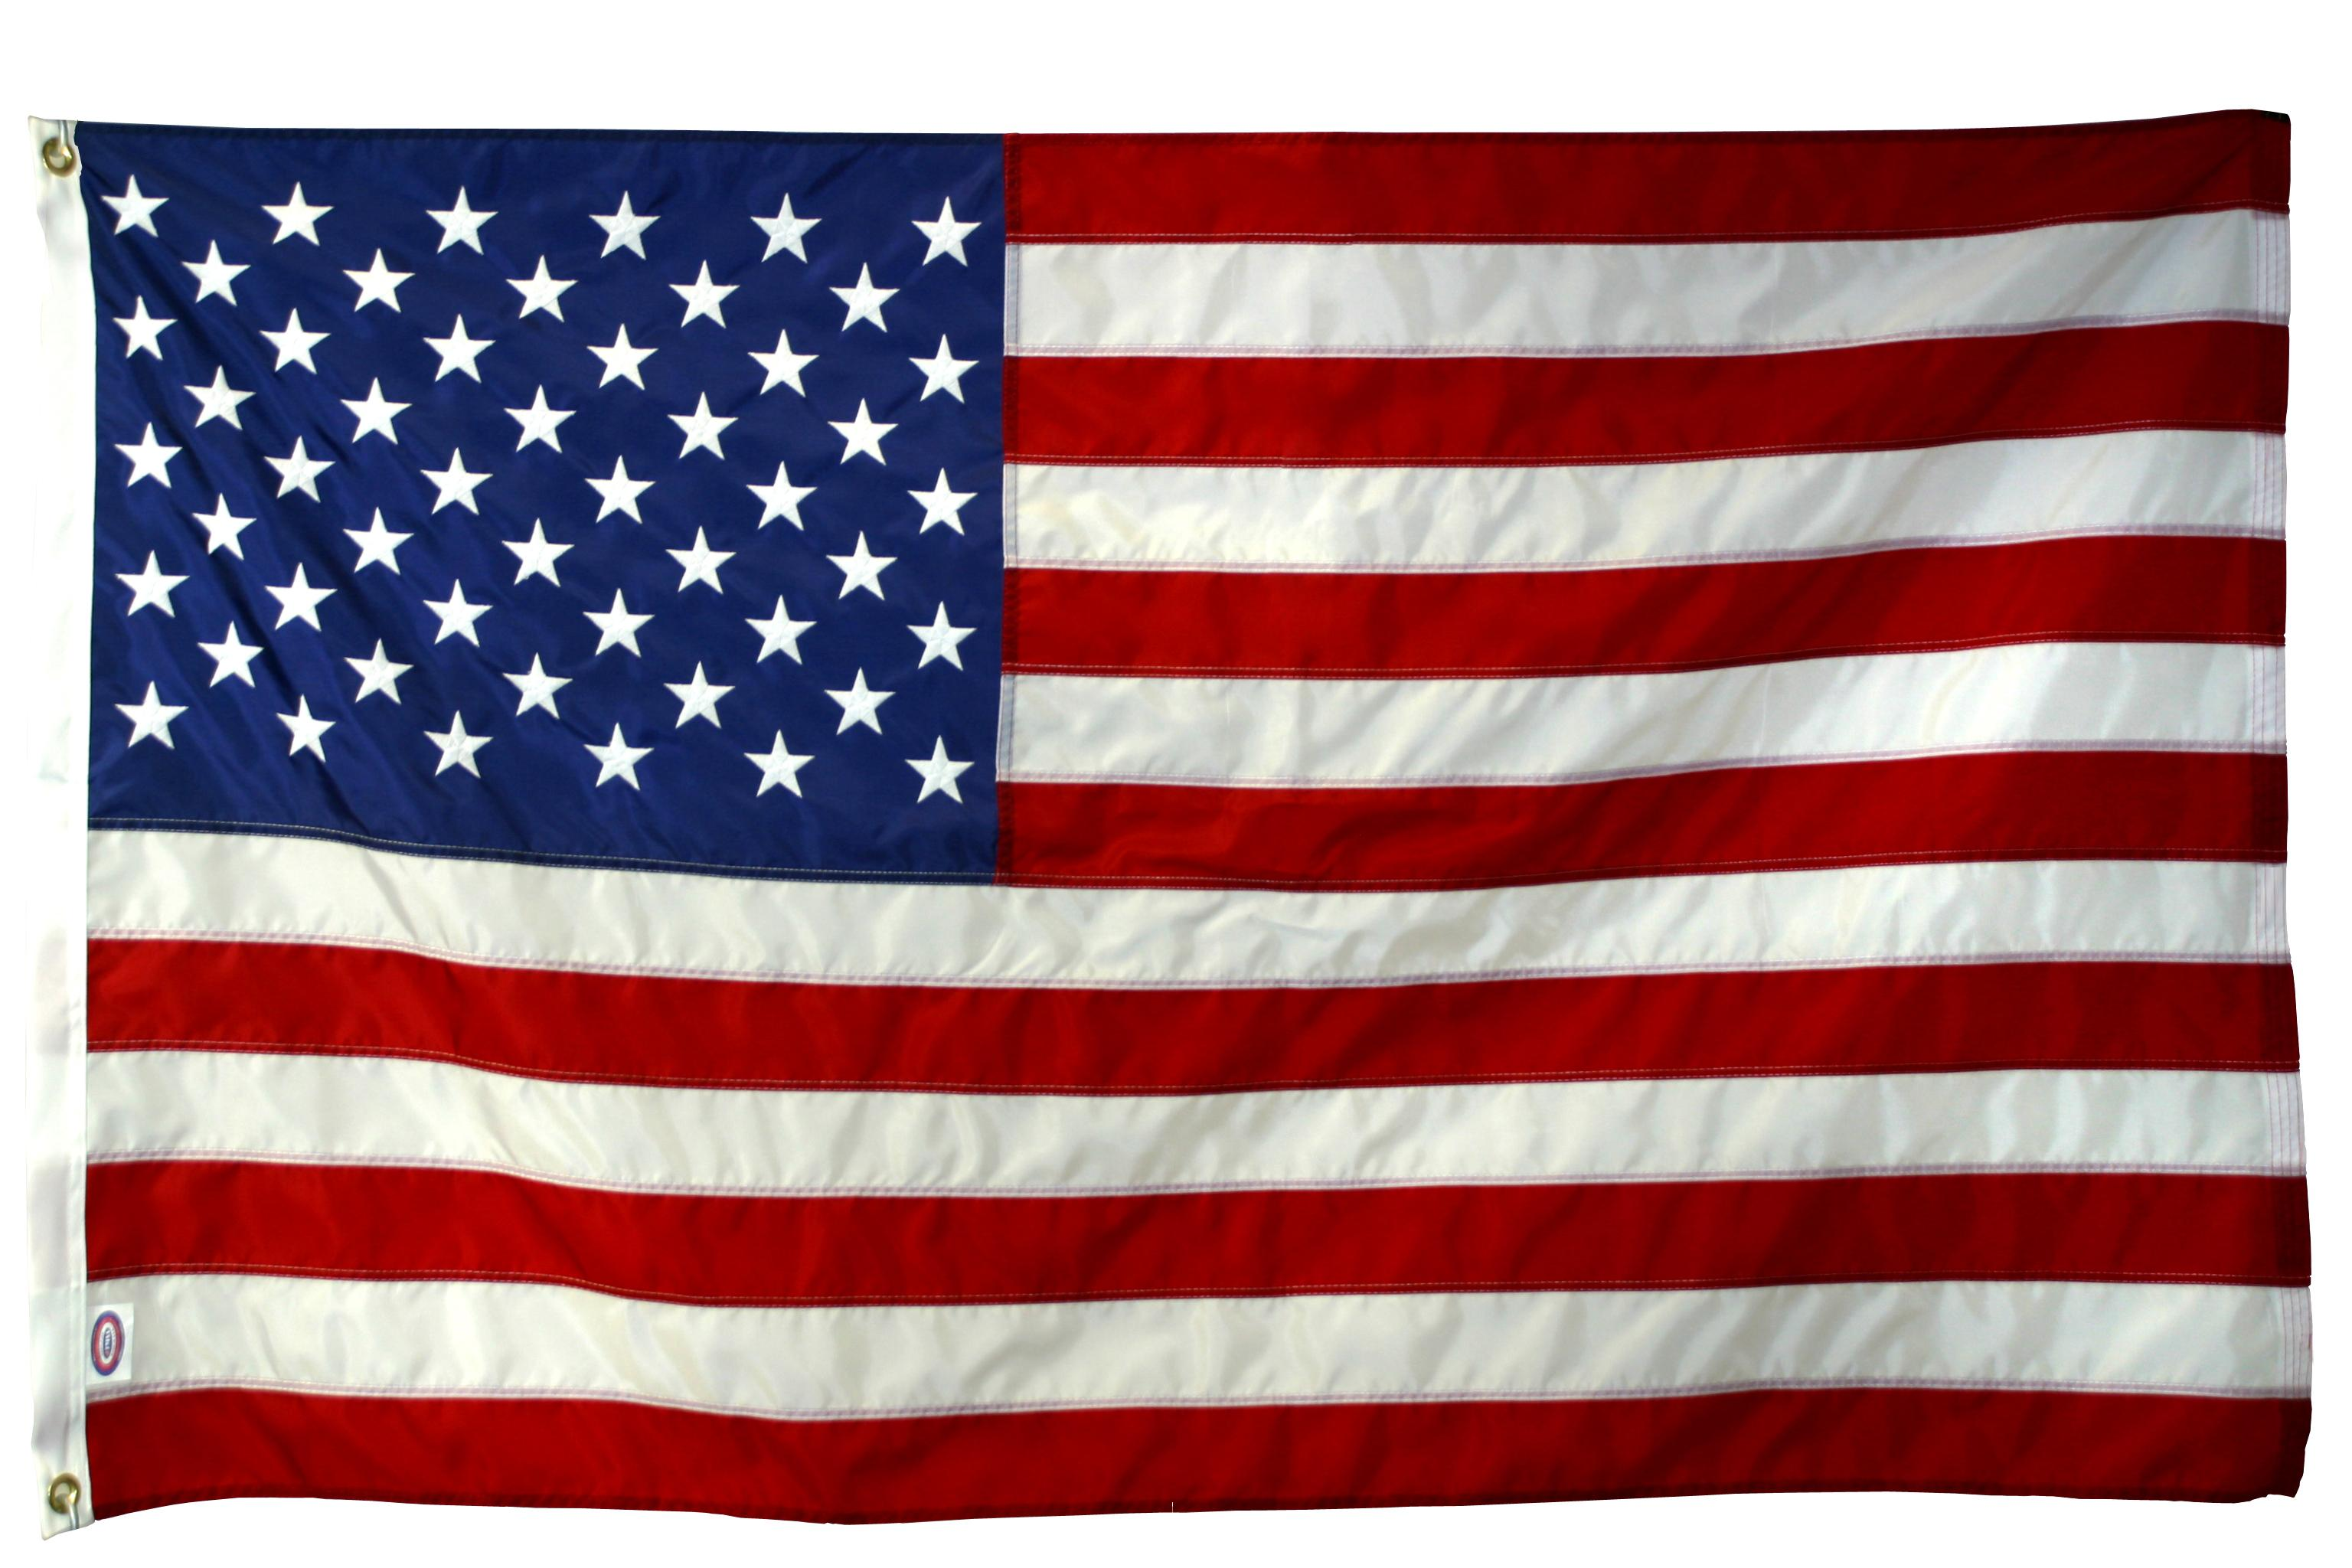 USAFlagSupply com - Nylon American Flags|Made 100% In USA